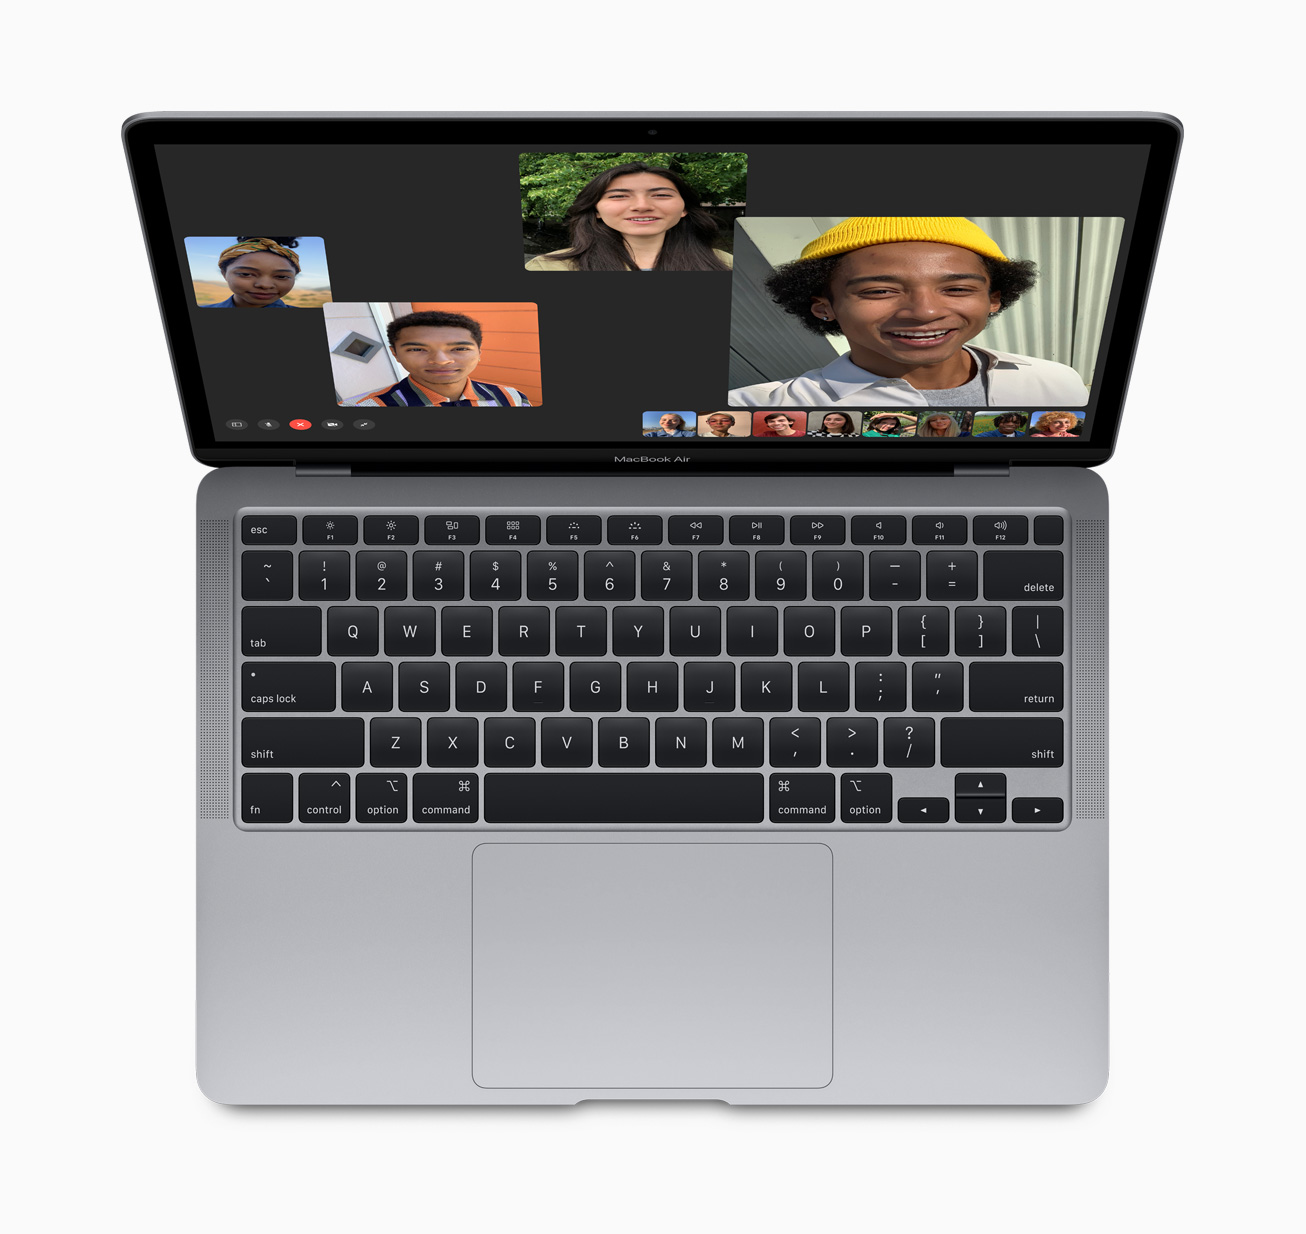 Apple_new-macbook-air-facetime-screen_03182020_inline.jpg.large_2x.jpg (1306×1234)